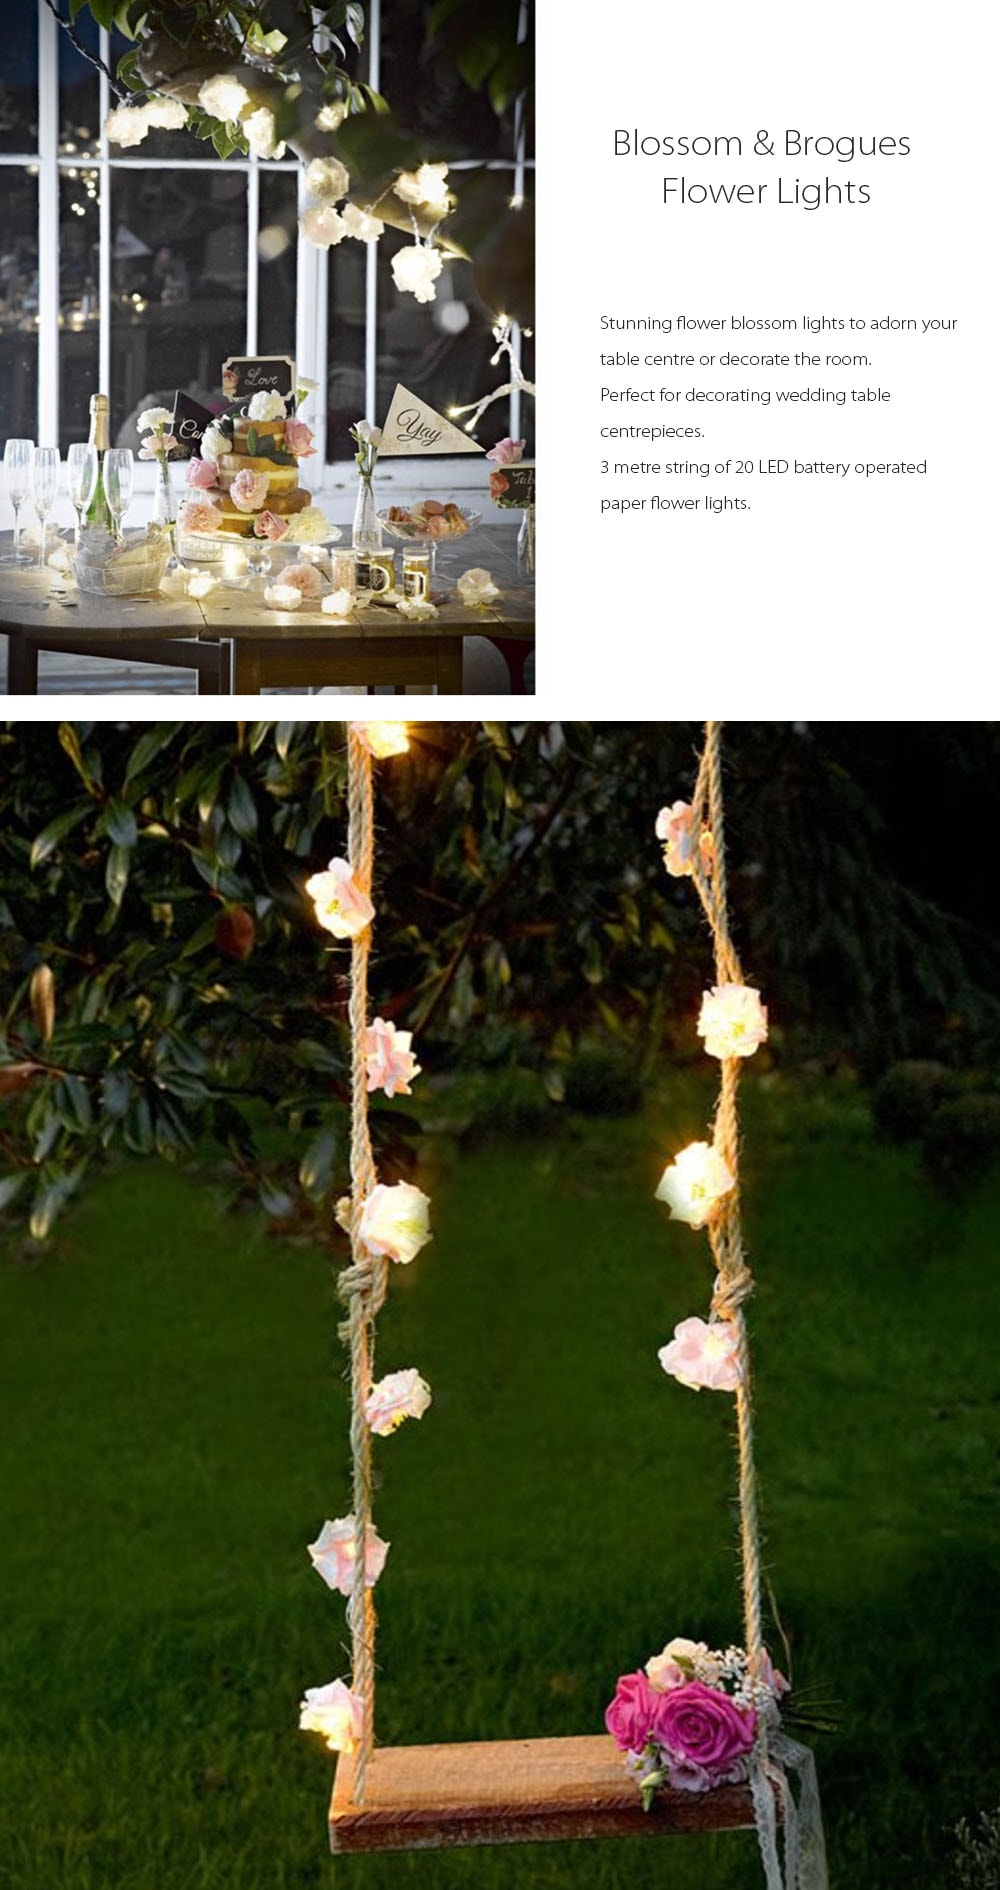 Blossom & Brogues Flower Lights Warm Your House